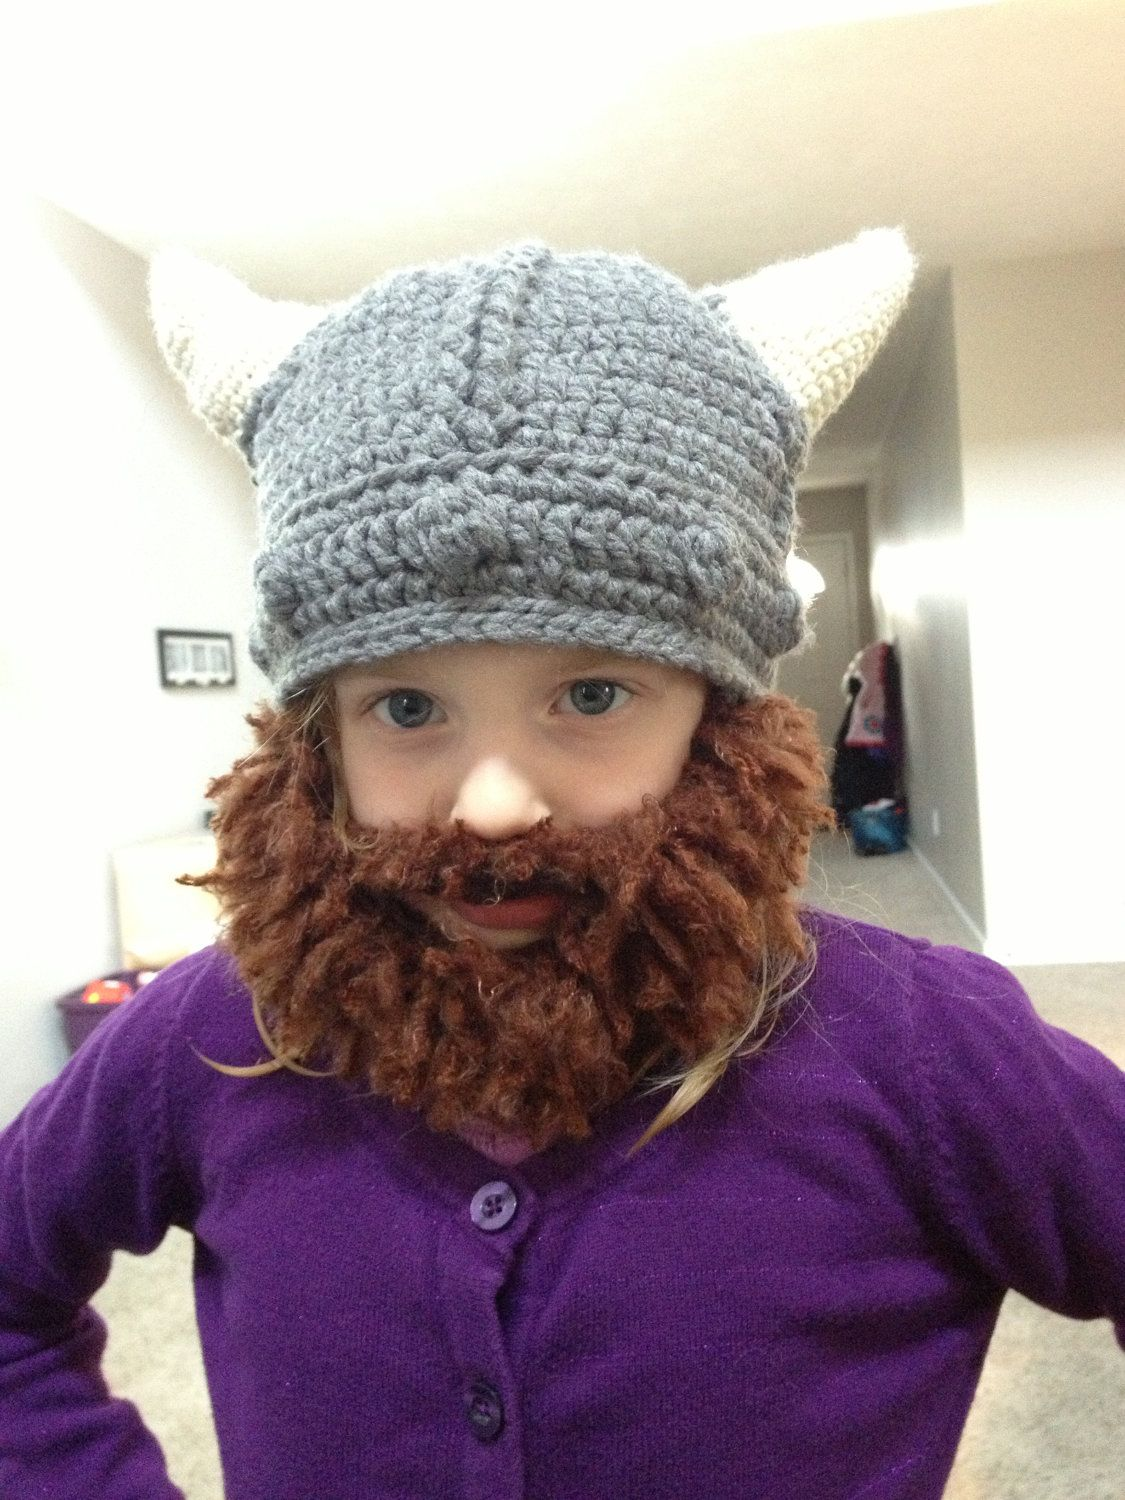 Fuzzy Beard Crochet Viking hat. Crochet hats Pinterest Vikings, Crochet...